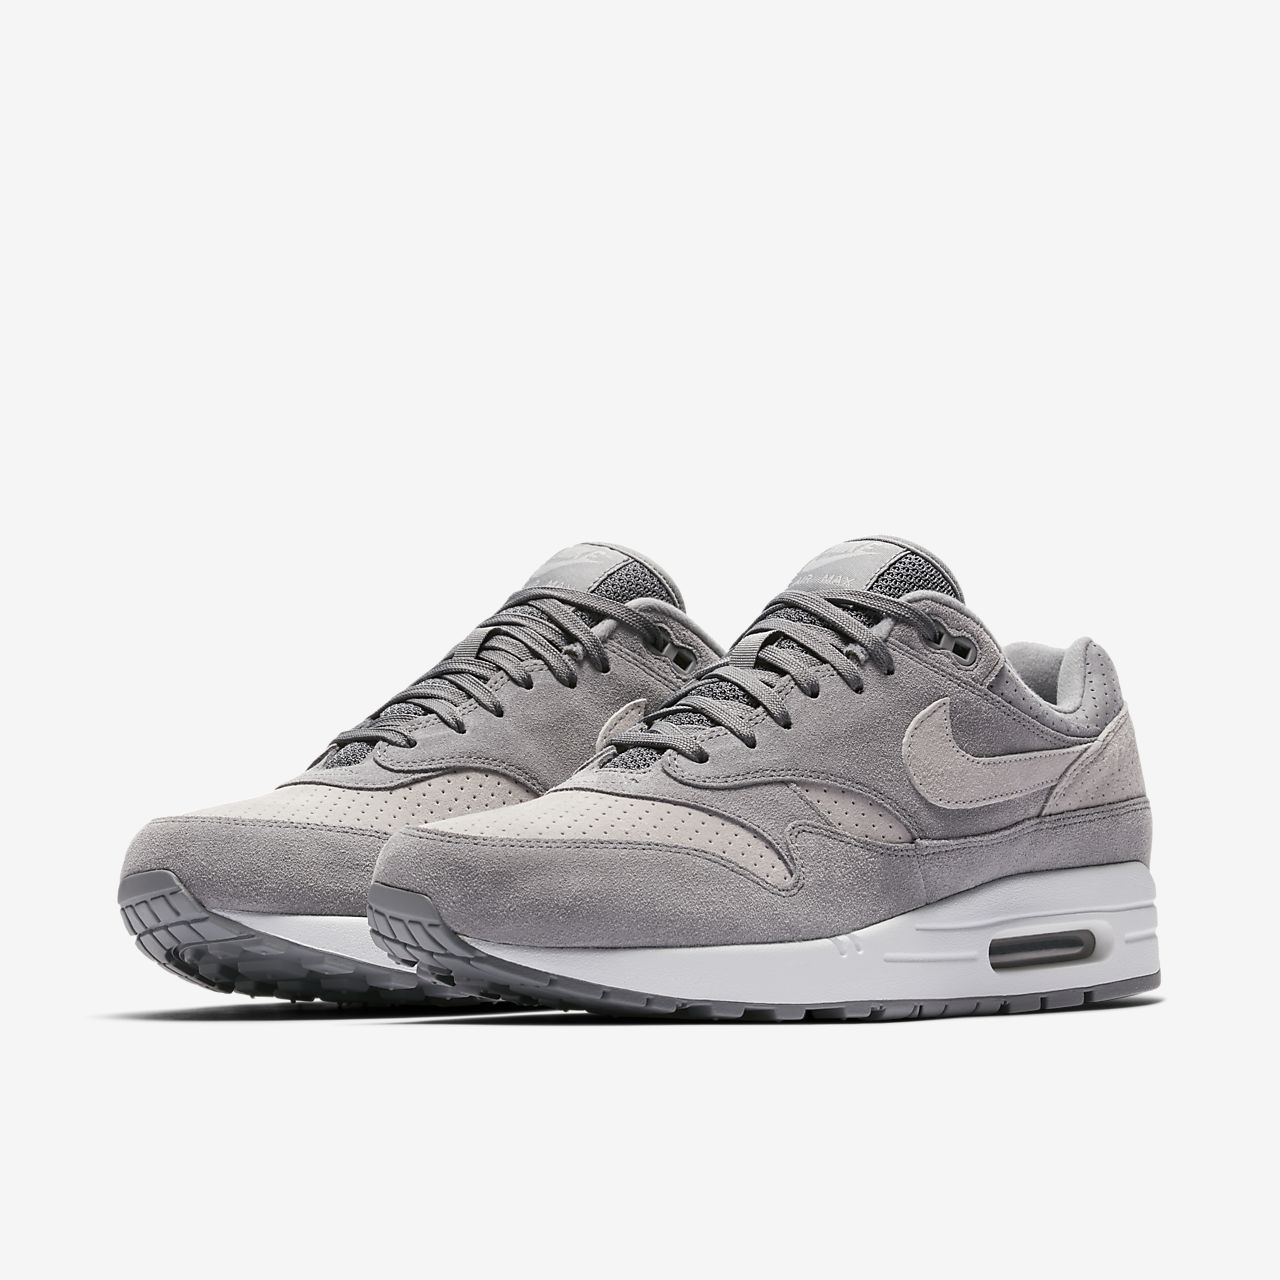 nike air max 1 pinnacle 2018 nz